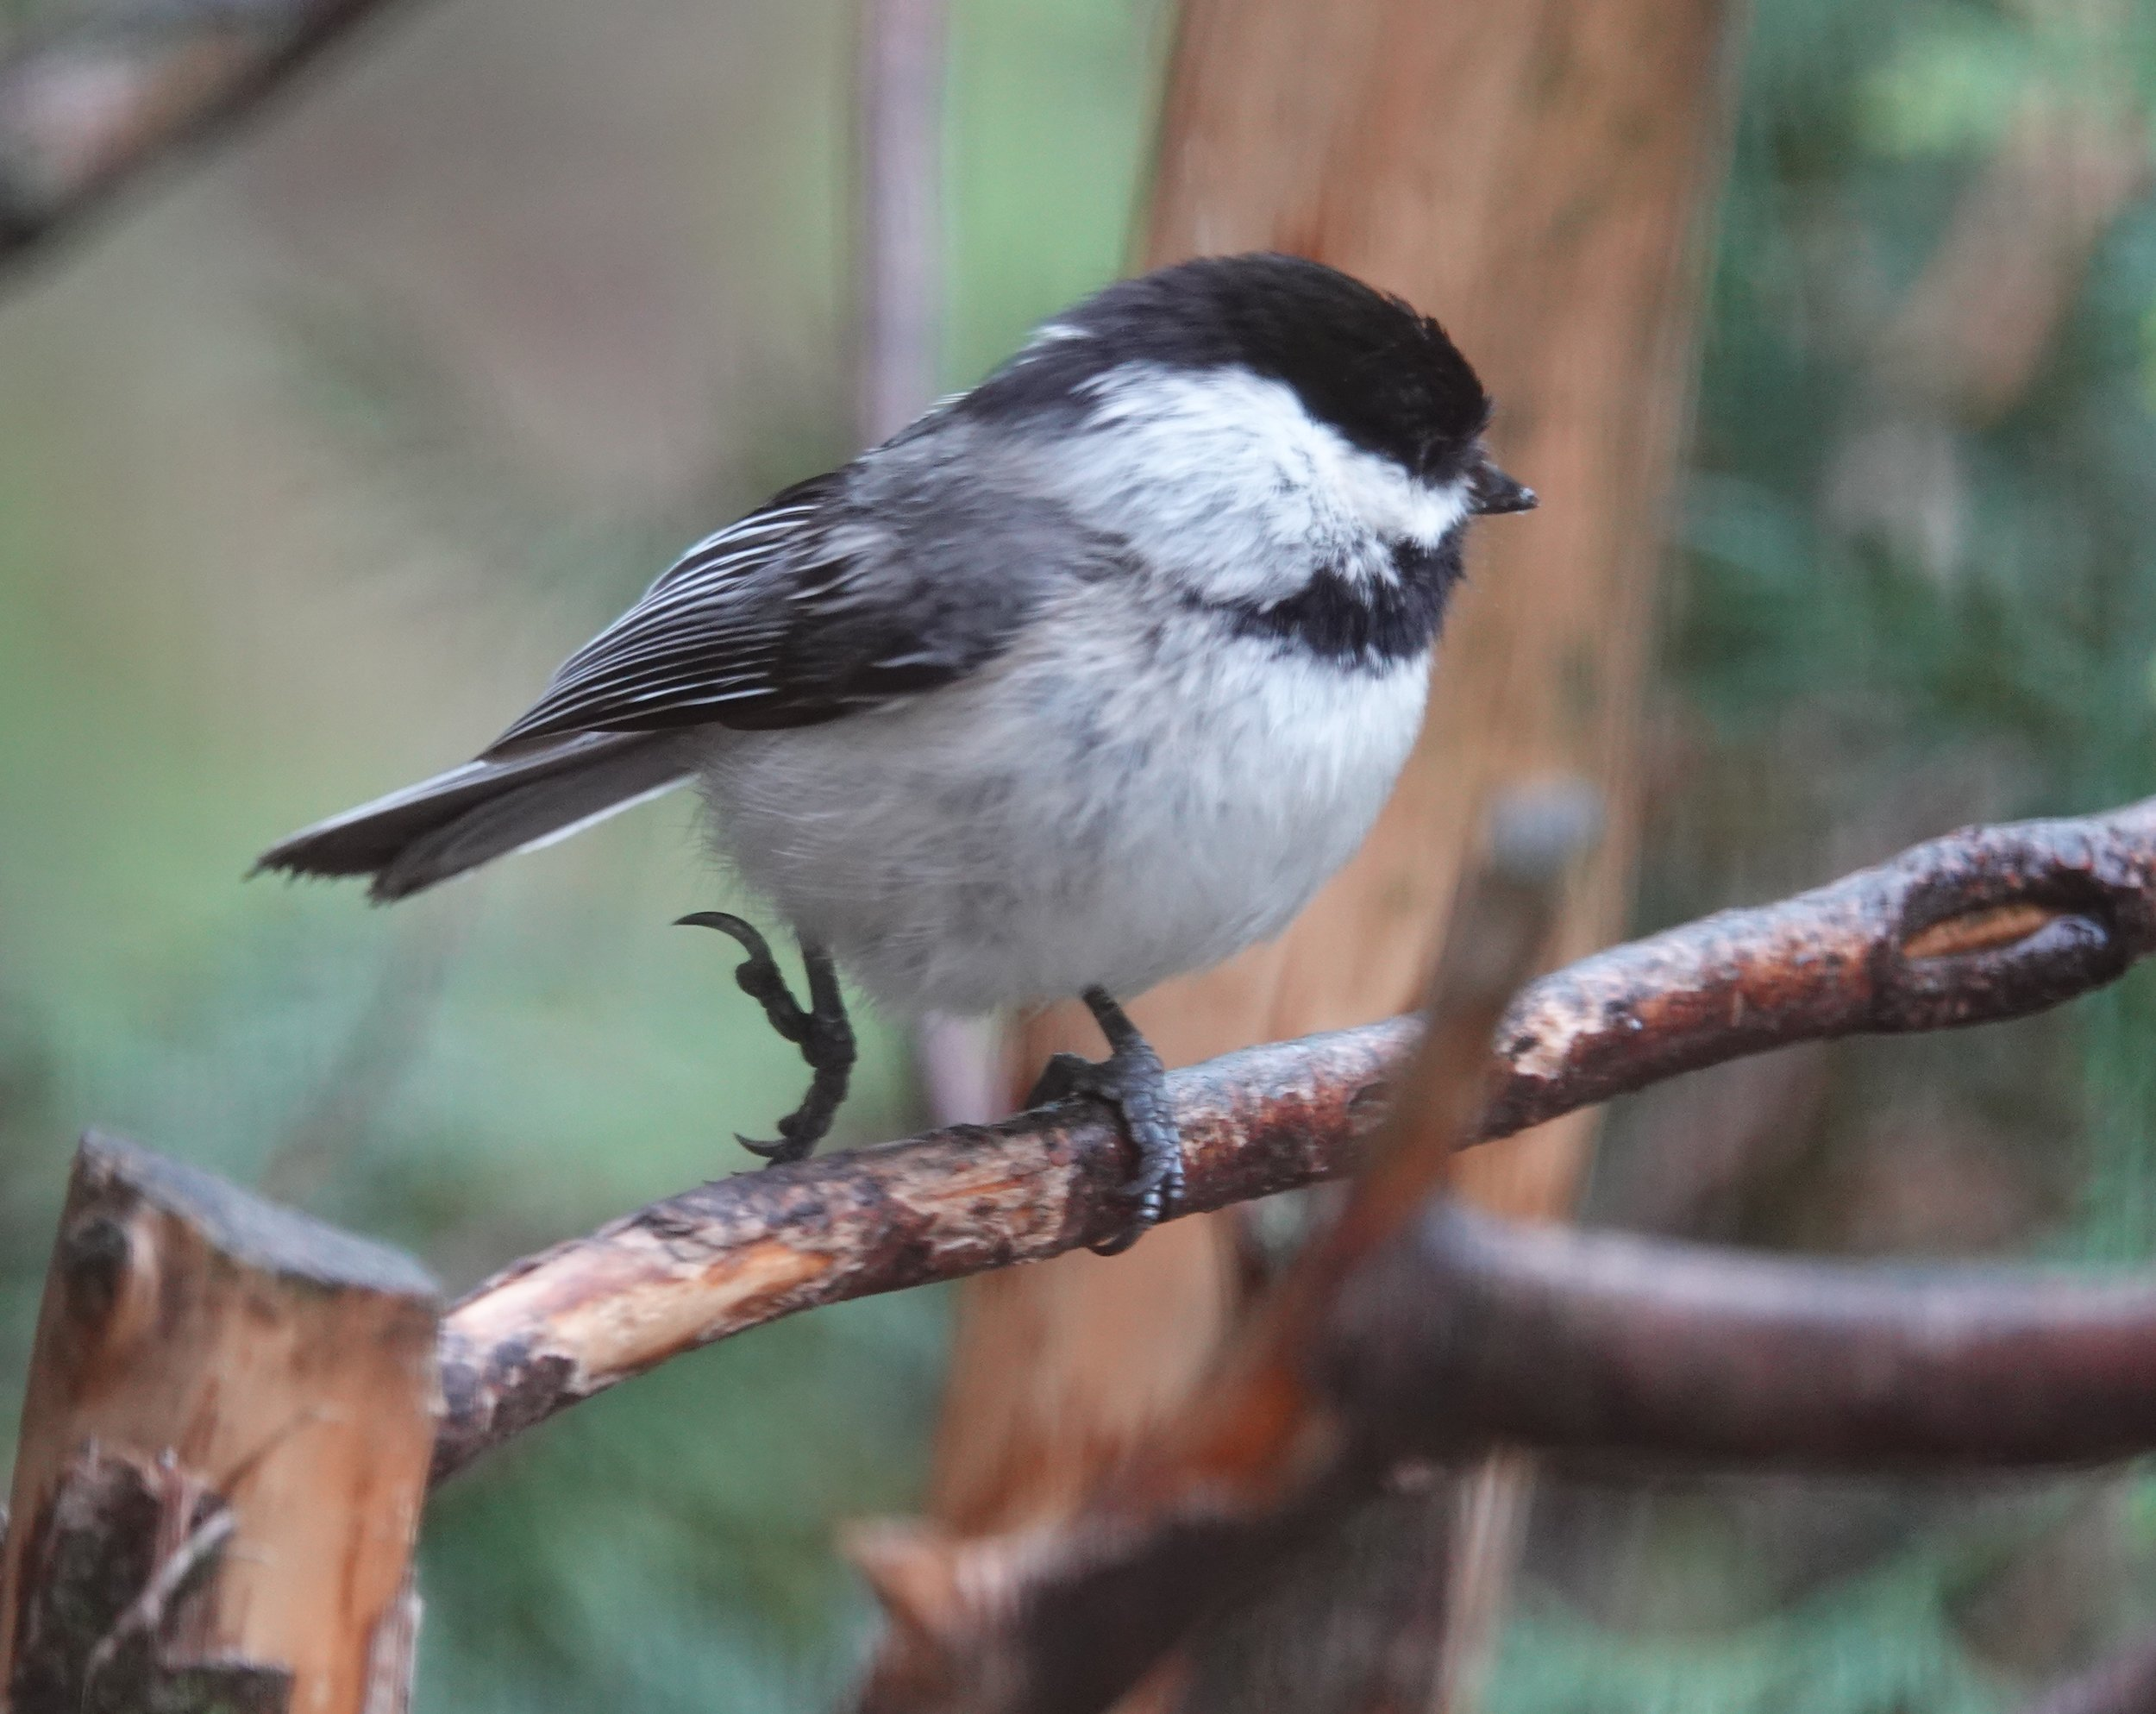 A chickadee kicks up its heels.